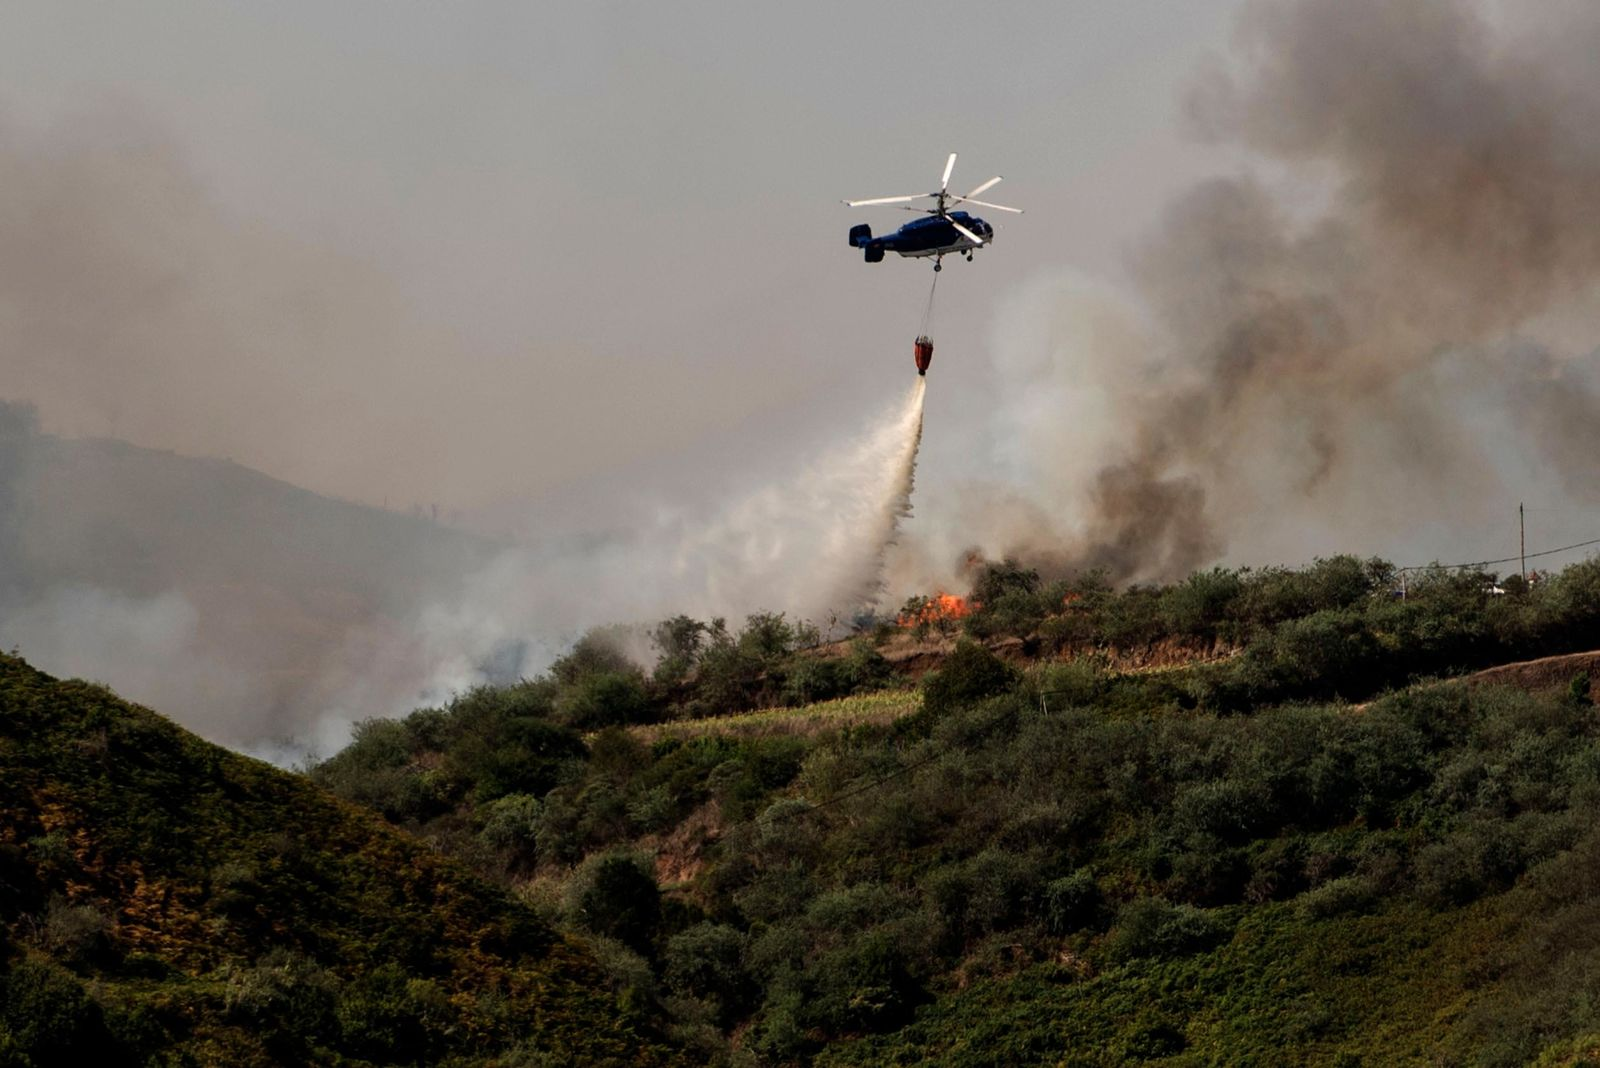 A helicopter operates over a wildfire in Canary Islands, Spain, Monday, Aug. 19, 2019. . (AP Photo/Arturo Jimenez)